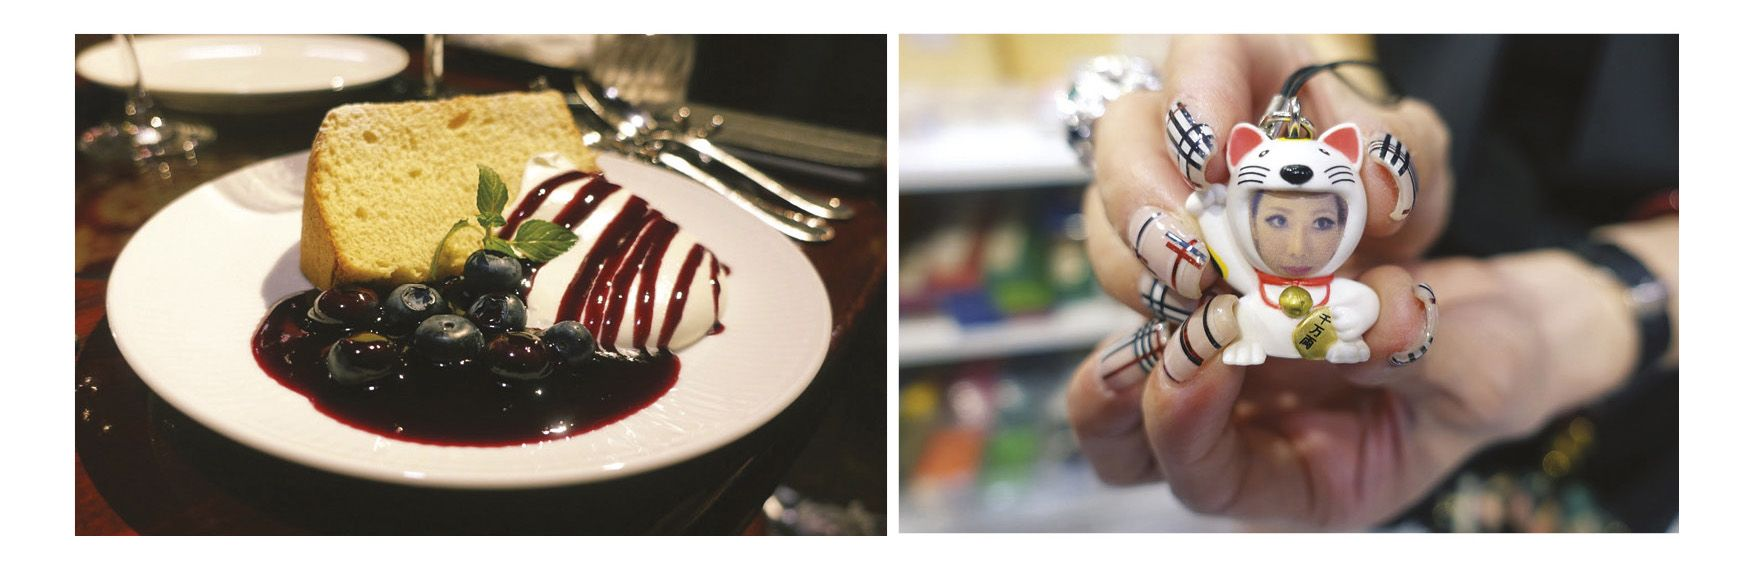 (Left to right)Who says I cant have my cake and eat it too?; When in Japan, do as the Japanese do, right? #burberryfornails